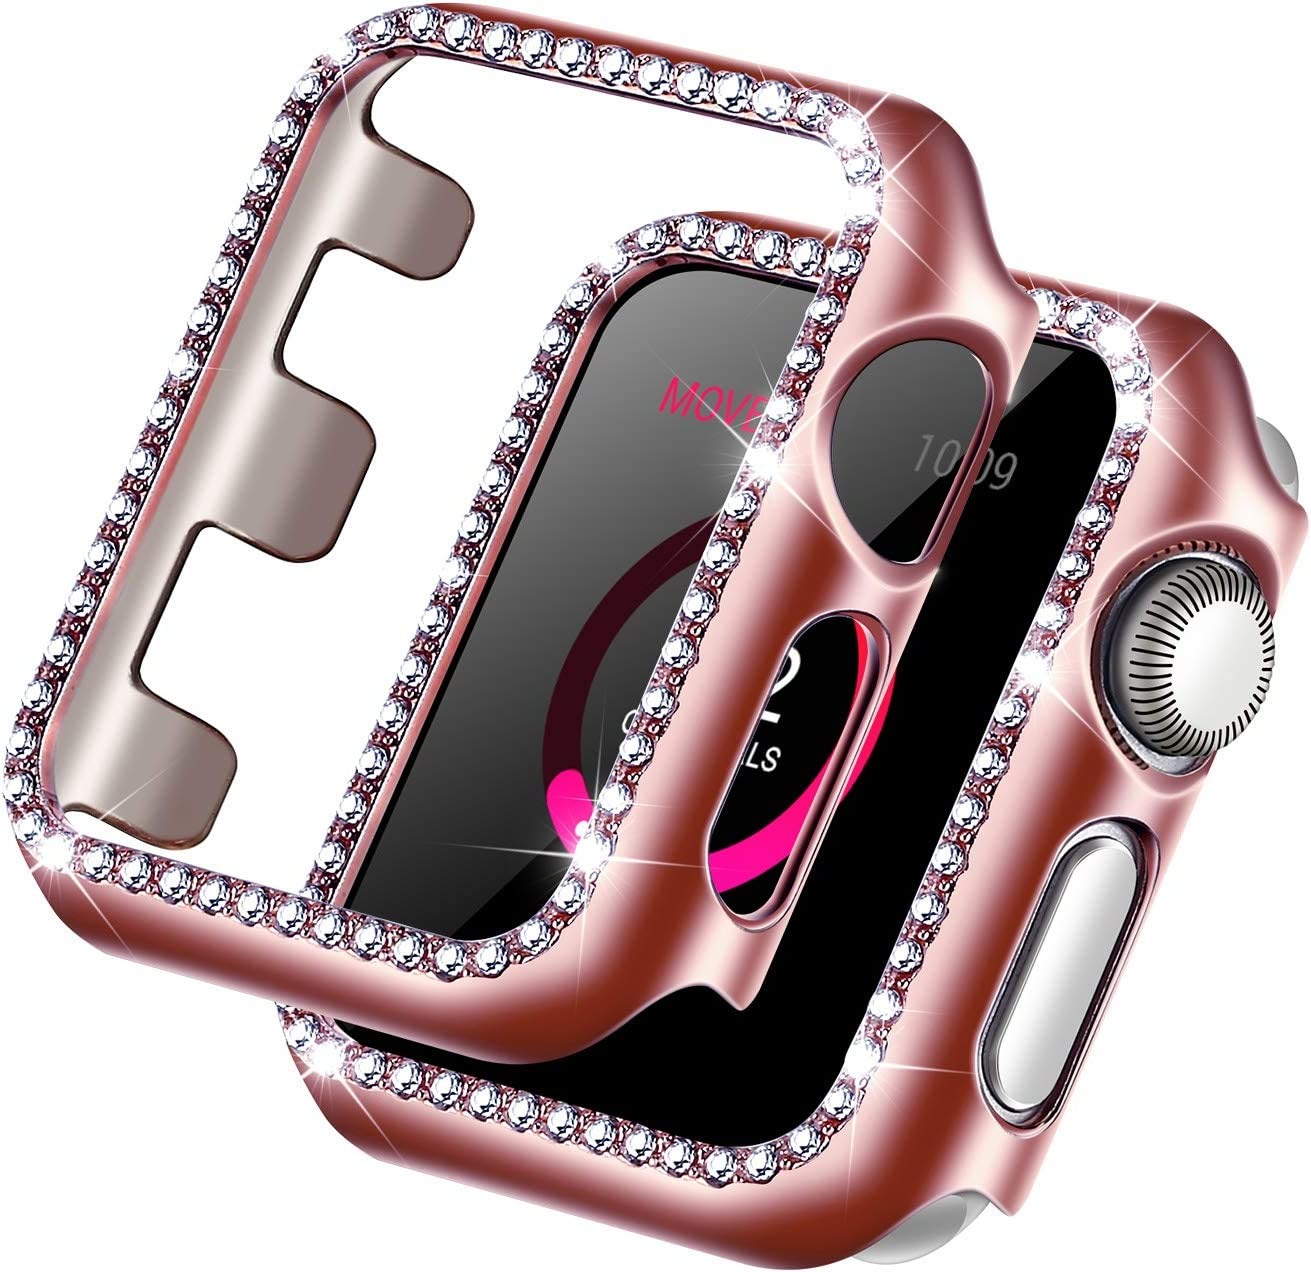 Forbear Compatible with Apple Watch Case 38mm, iWatch Cover with Bling Crystal Diamonds Shiny Rhinestone Bumper, Electroplated PC Protective Frame for Apple Watch Series 3/2/1 (Rose Gold, 38mm)